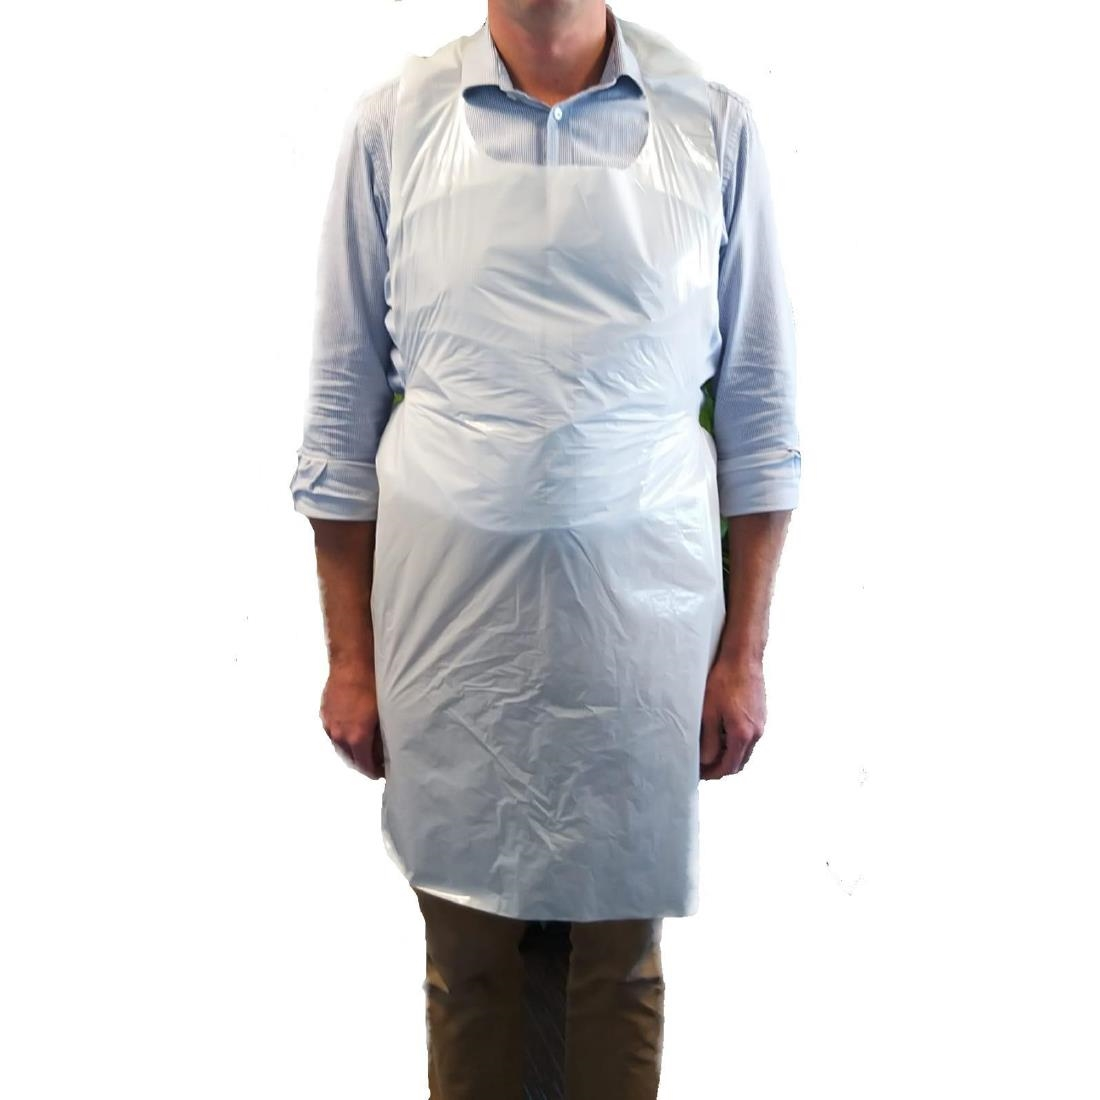 Image of Disposable Polythene Aprons 25 Micron White (Pack of 500) Pack of 500